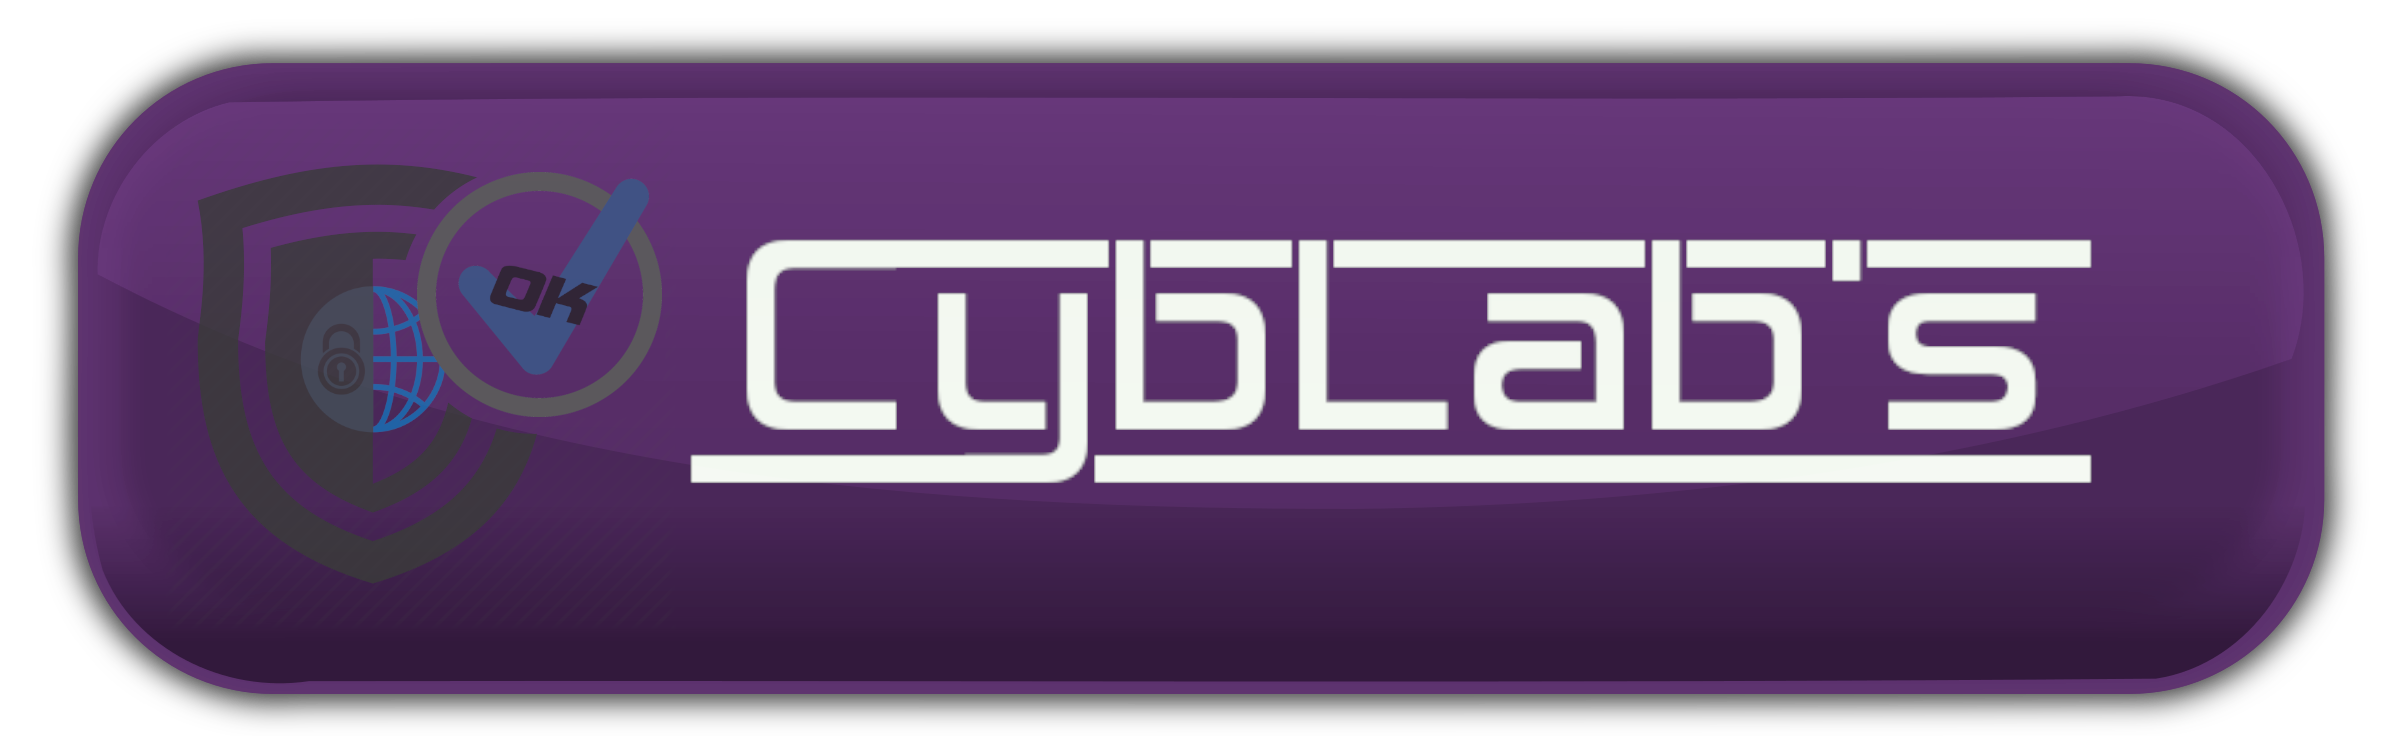 Website certified by CybLab's